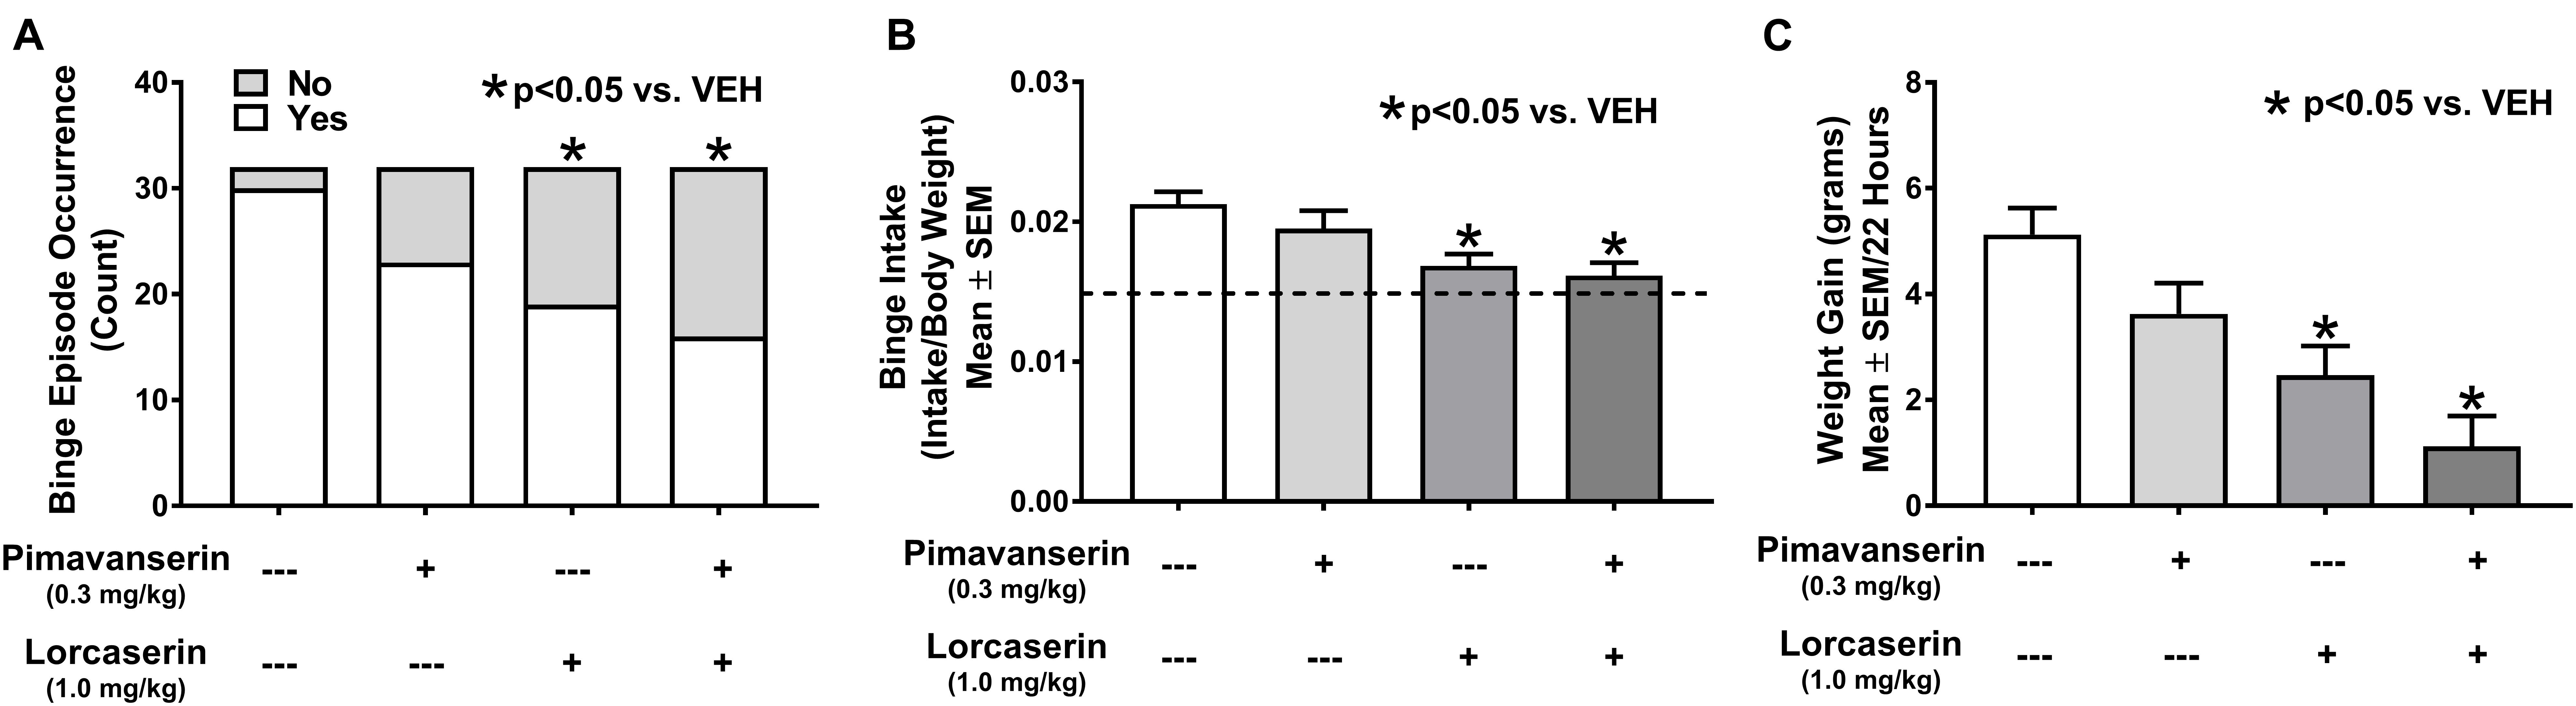 Frontiers | Pimavanserin and Lorcaserin Attenuate Measures